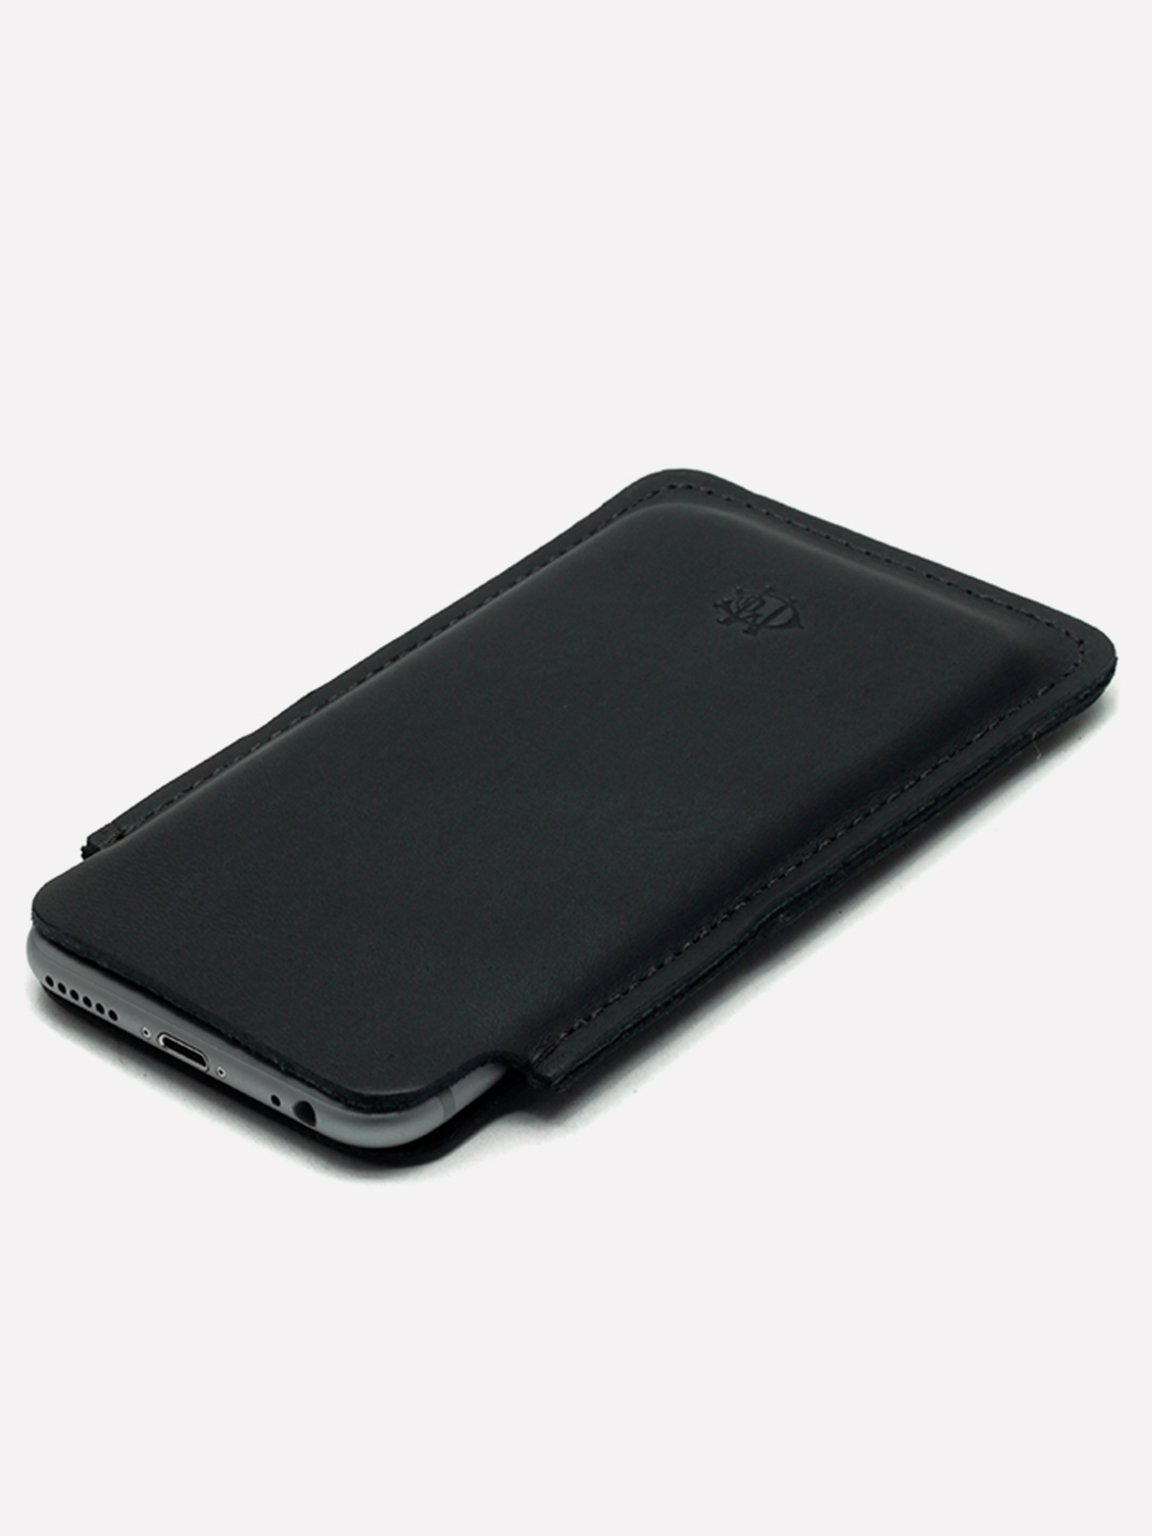 Foto do iPhone 6/6S/7 Case Cutterman - Black